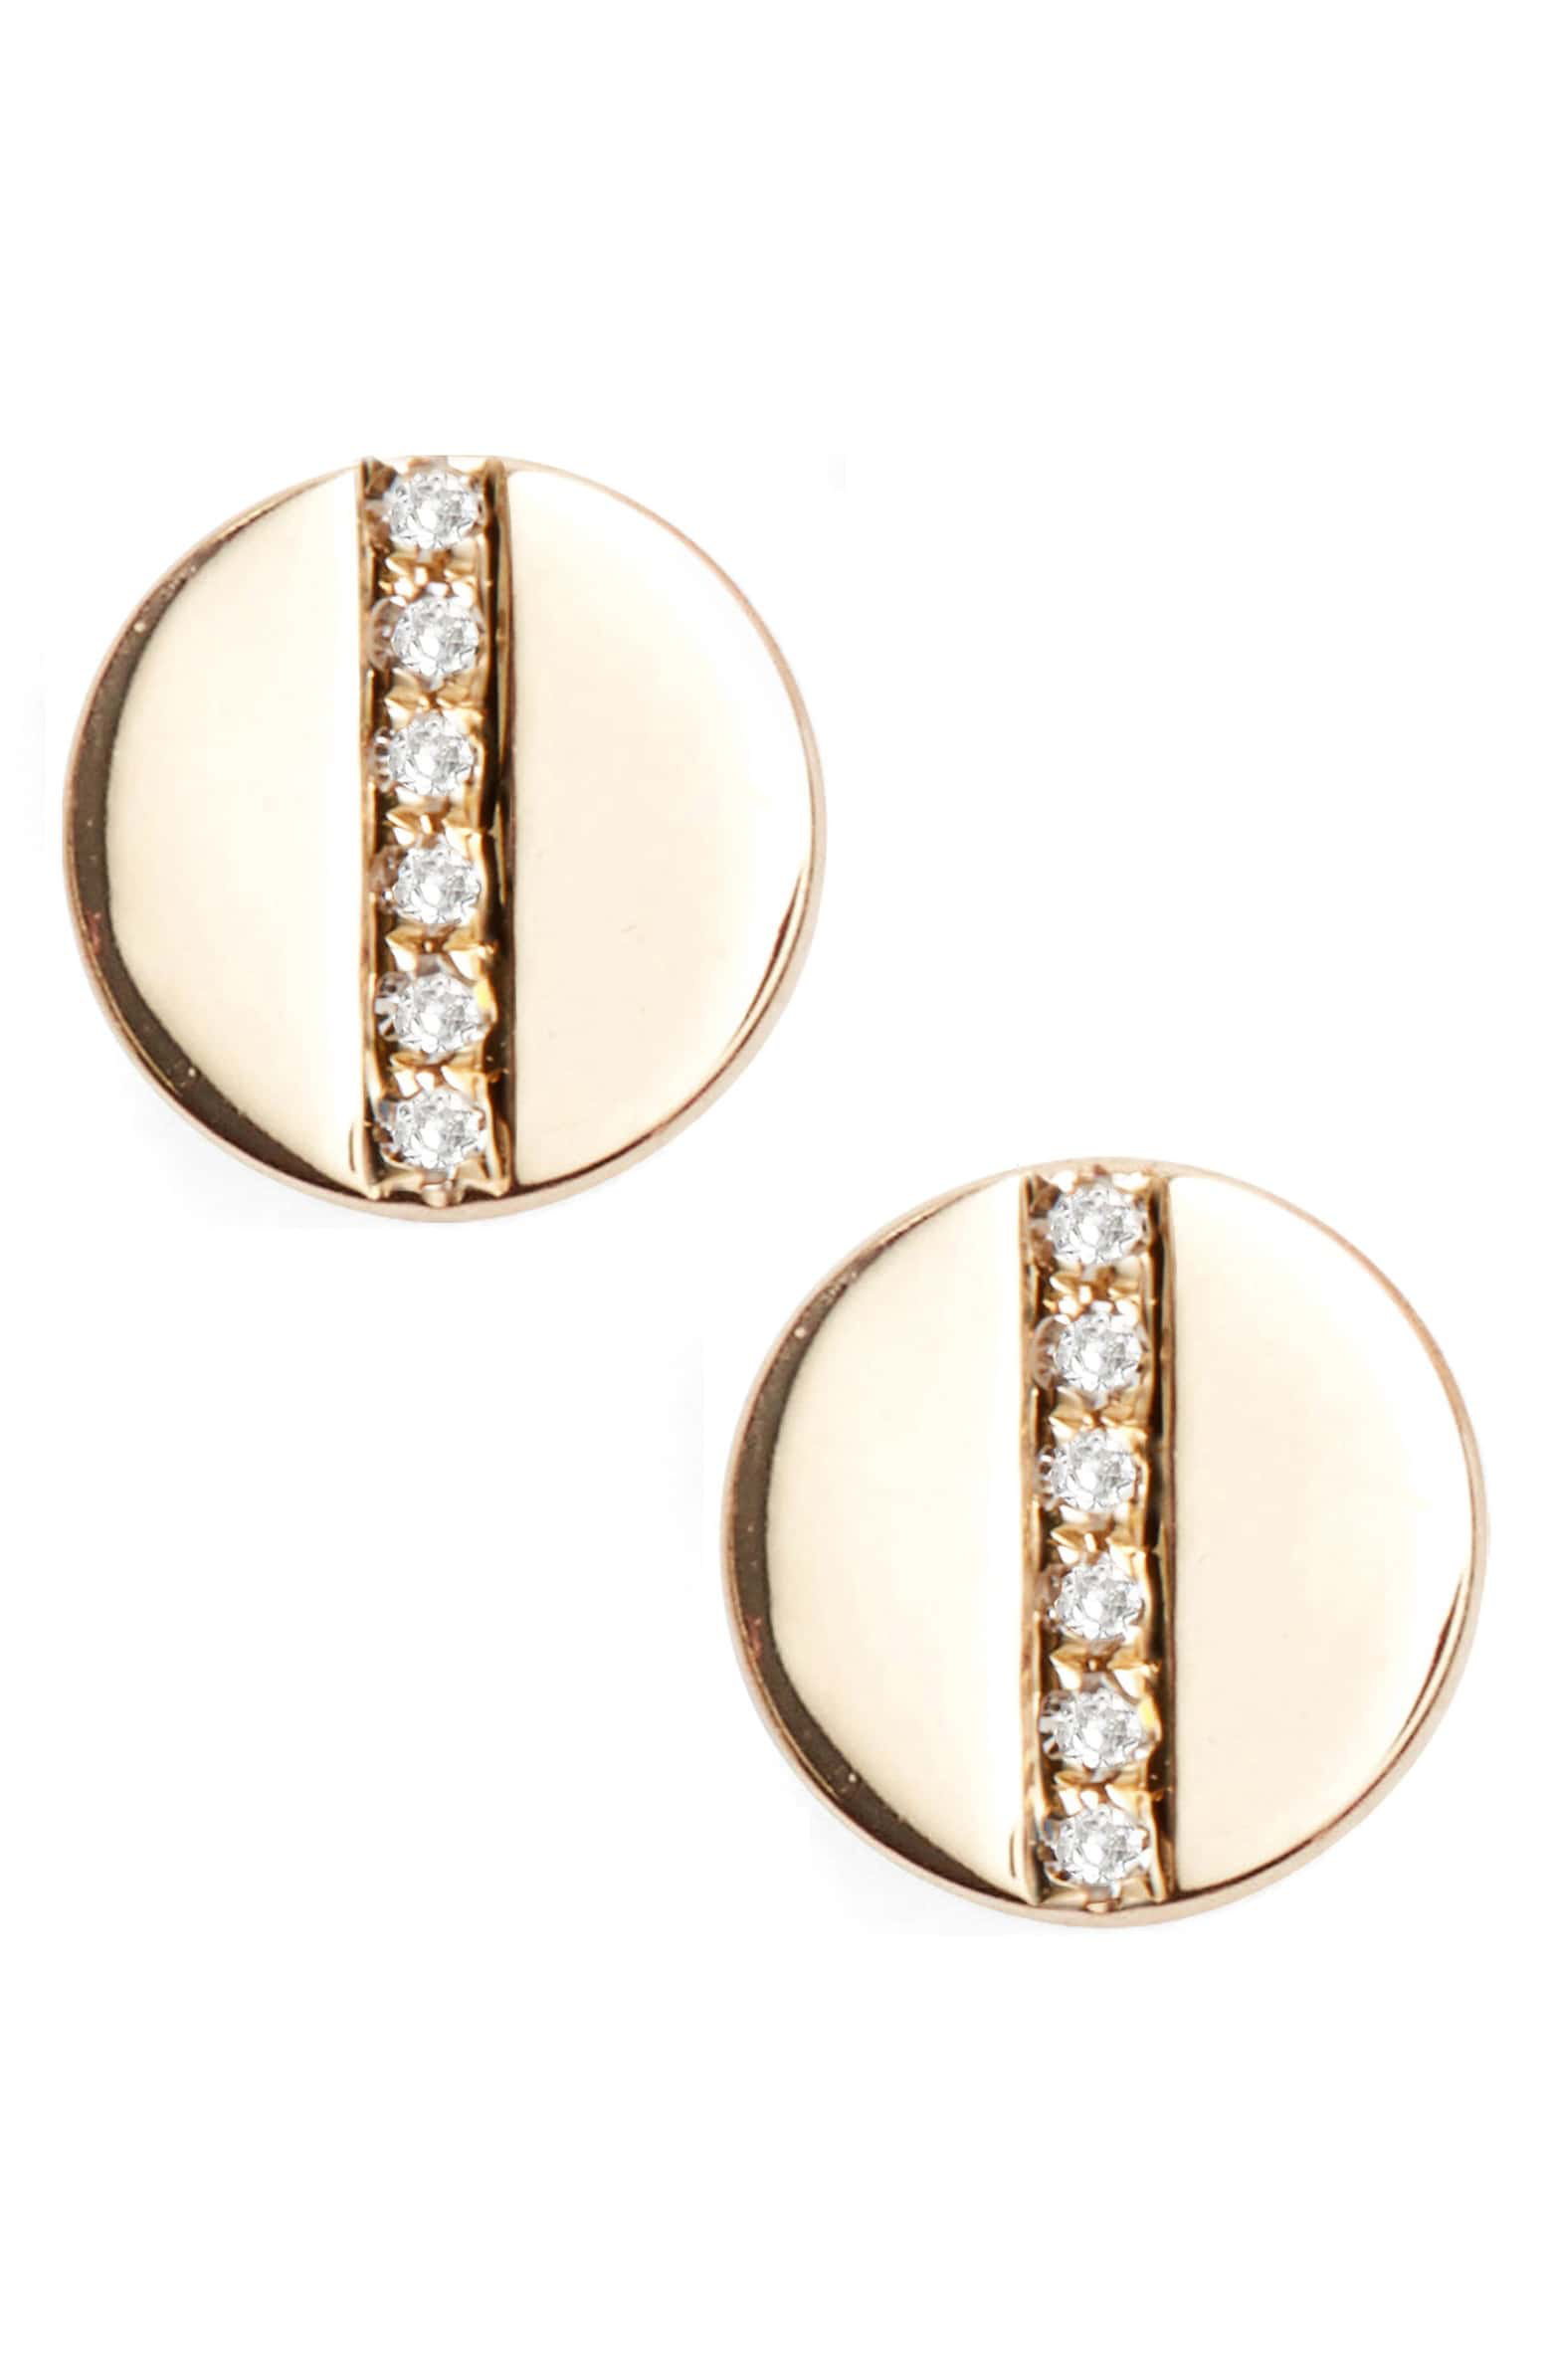 5. EF Collection screw stud earrings -